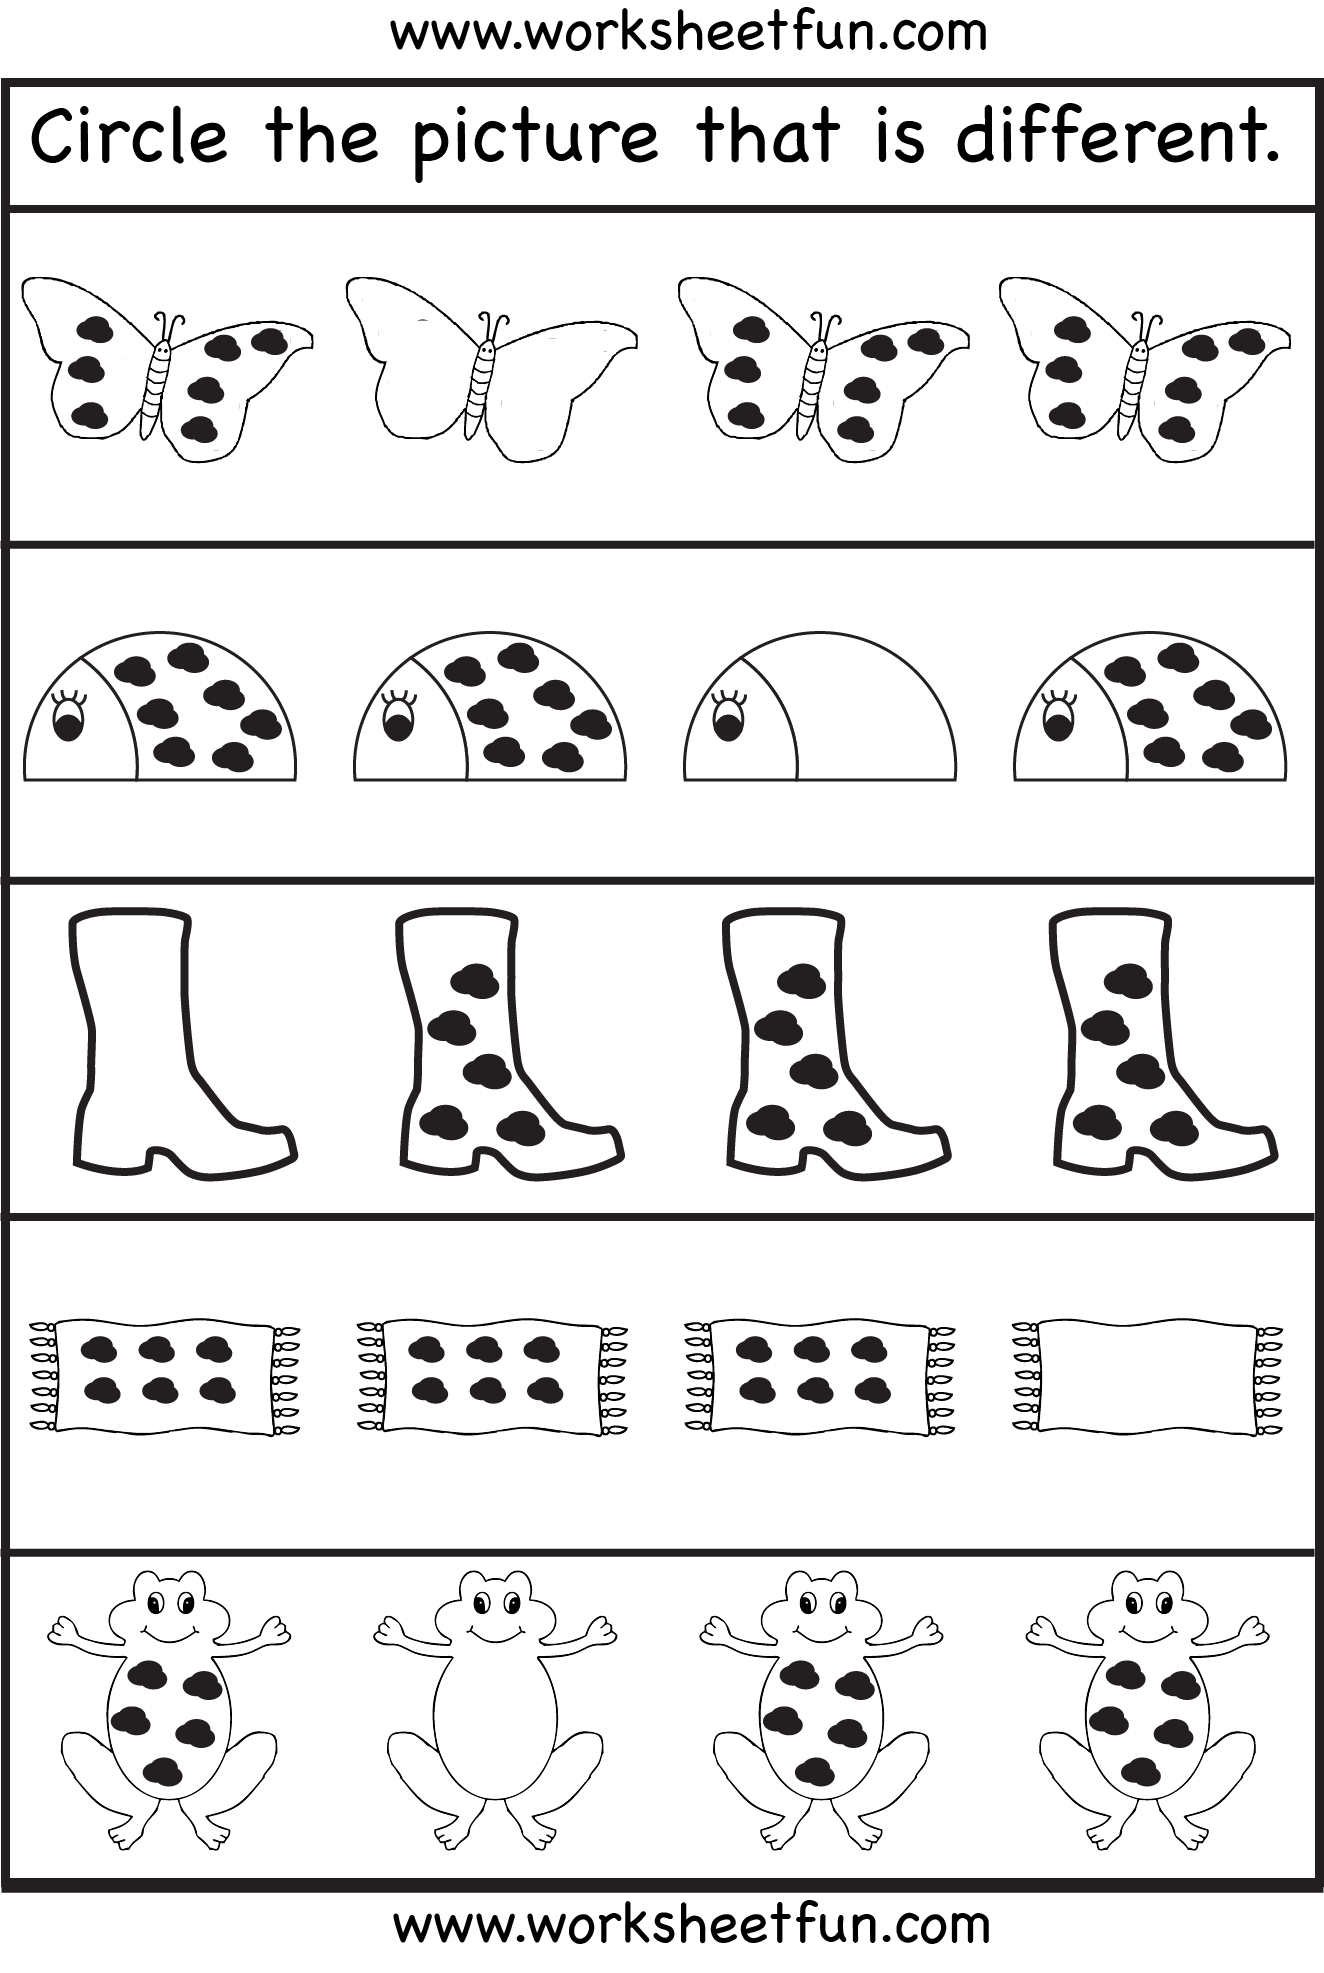 4 Year Old Worksheets Printable Learning Sample For